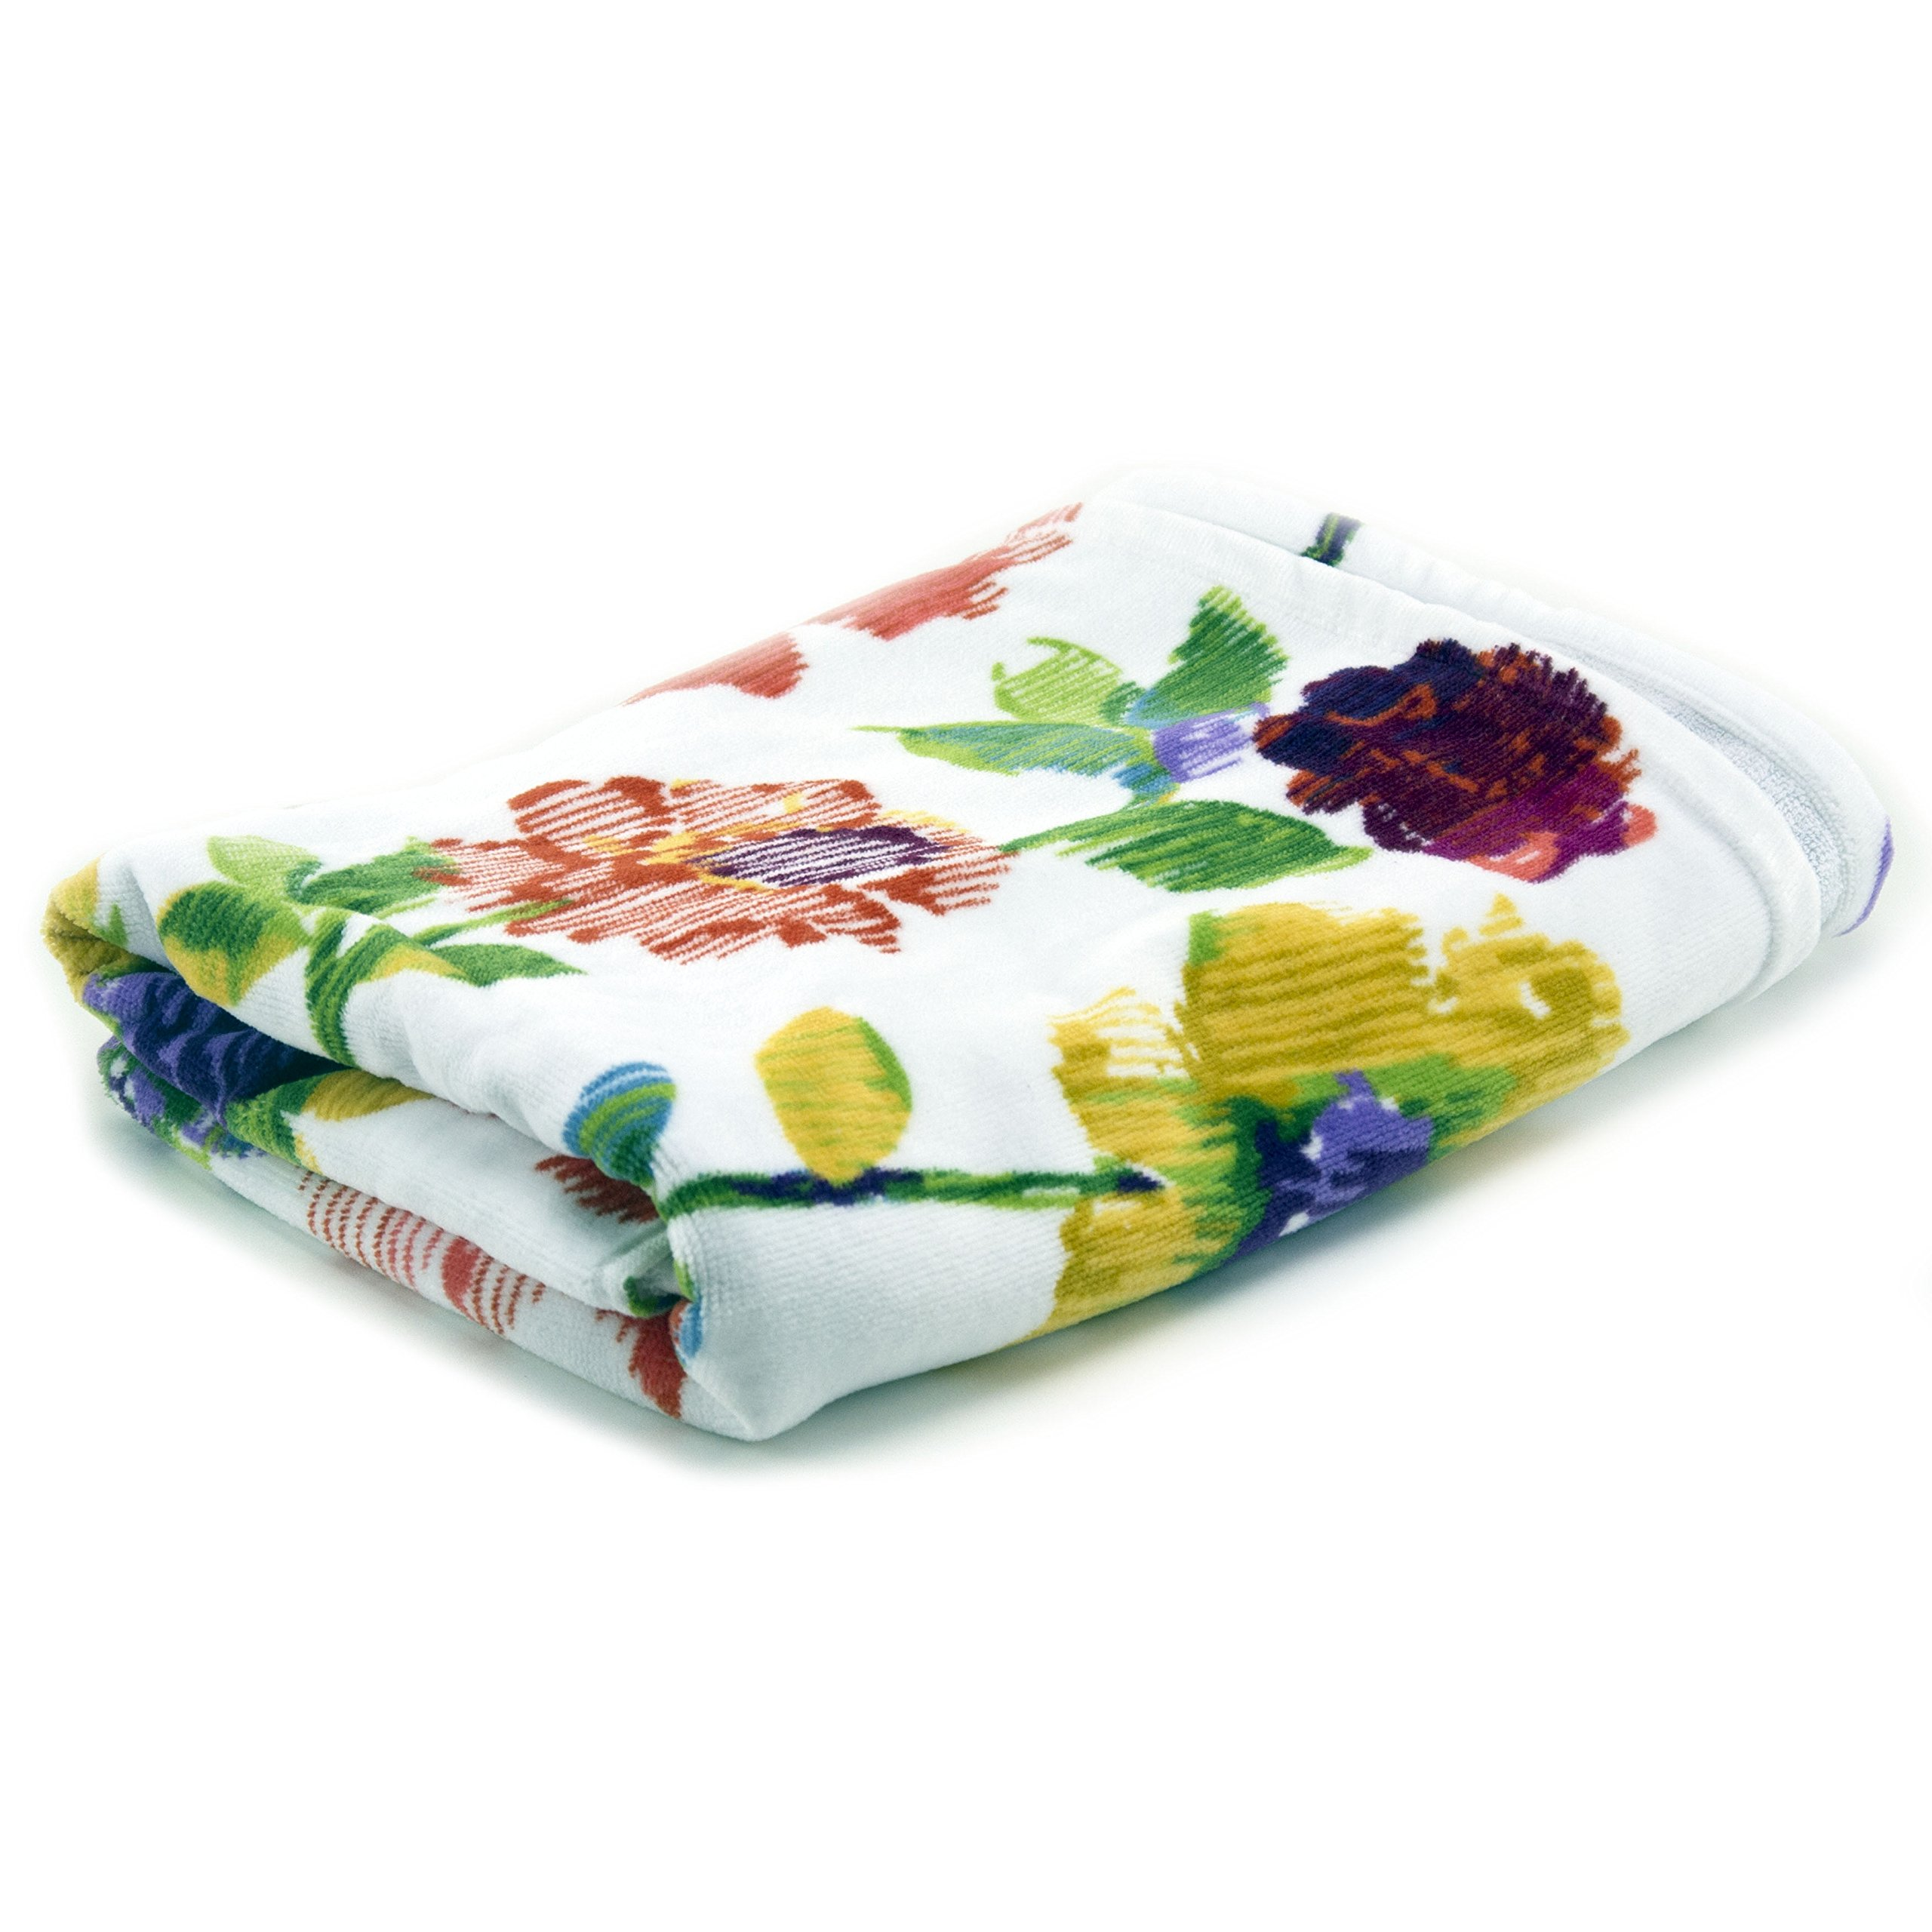 Lenox Garden Graffiti Printed Bath Towel